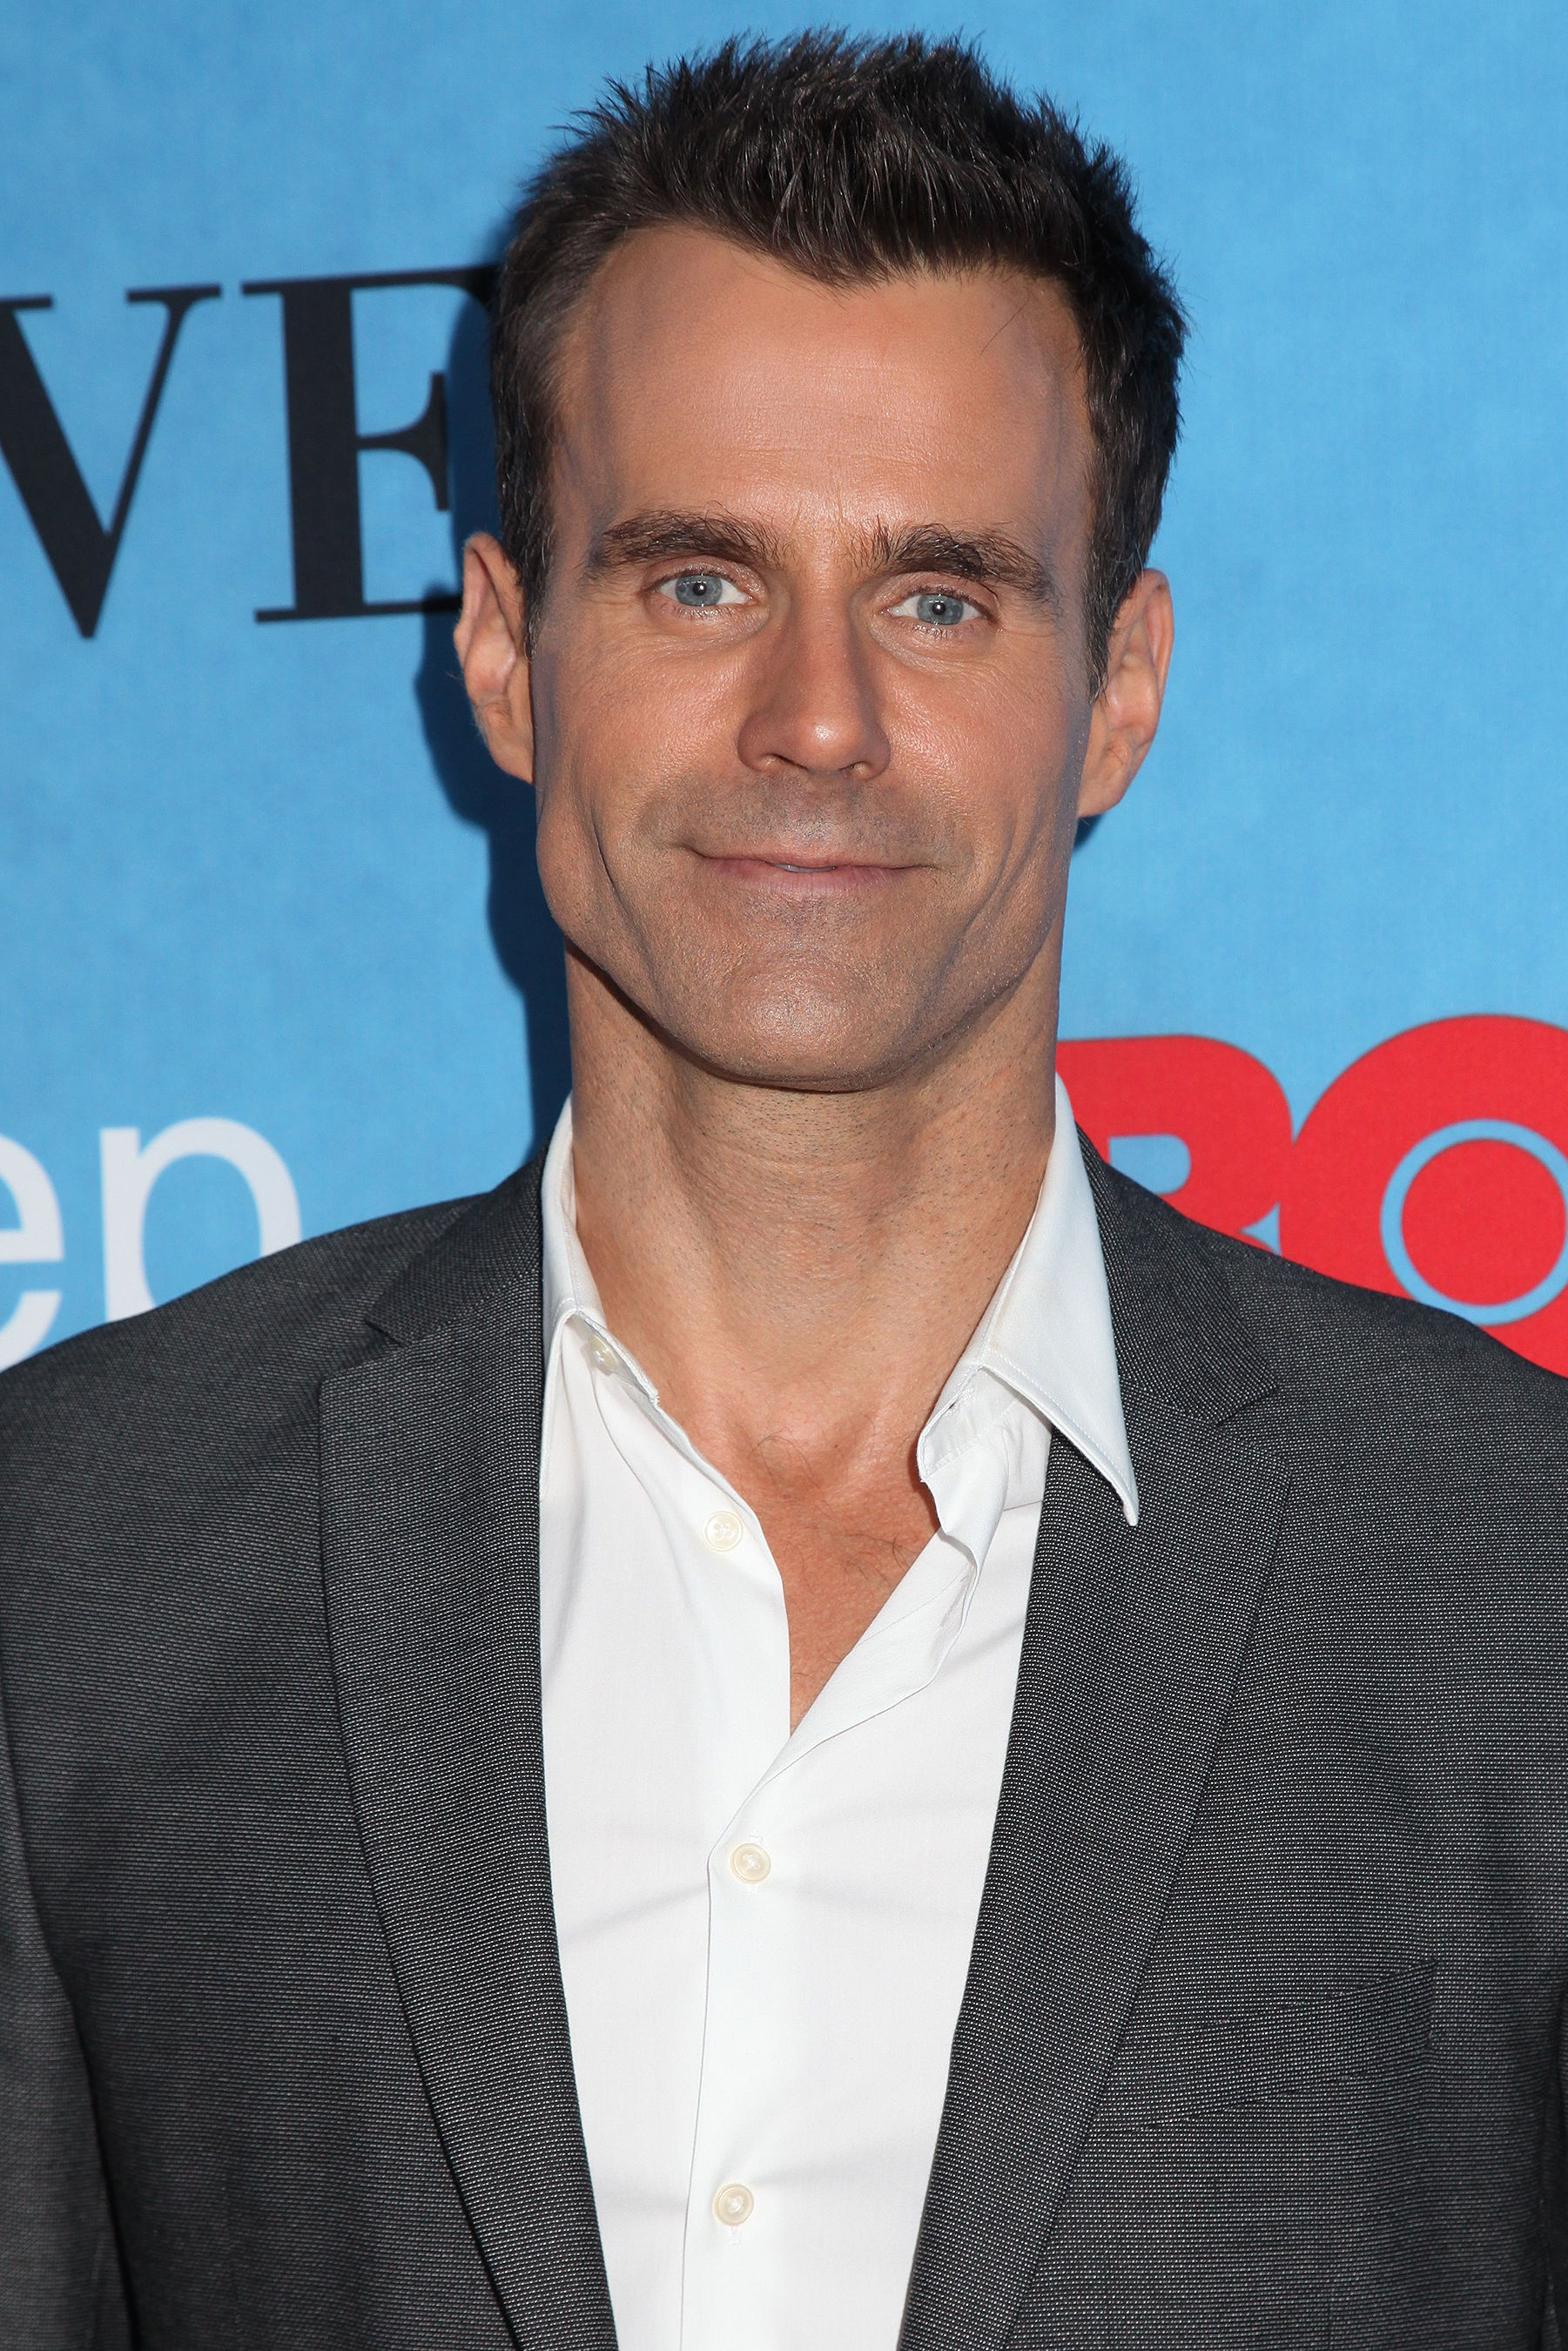 Hallmark Channel Host Cameron Mathison Reveals He Has Kidney Cancer: 'Feeling Very Optimistic'